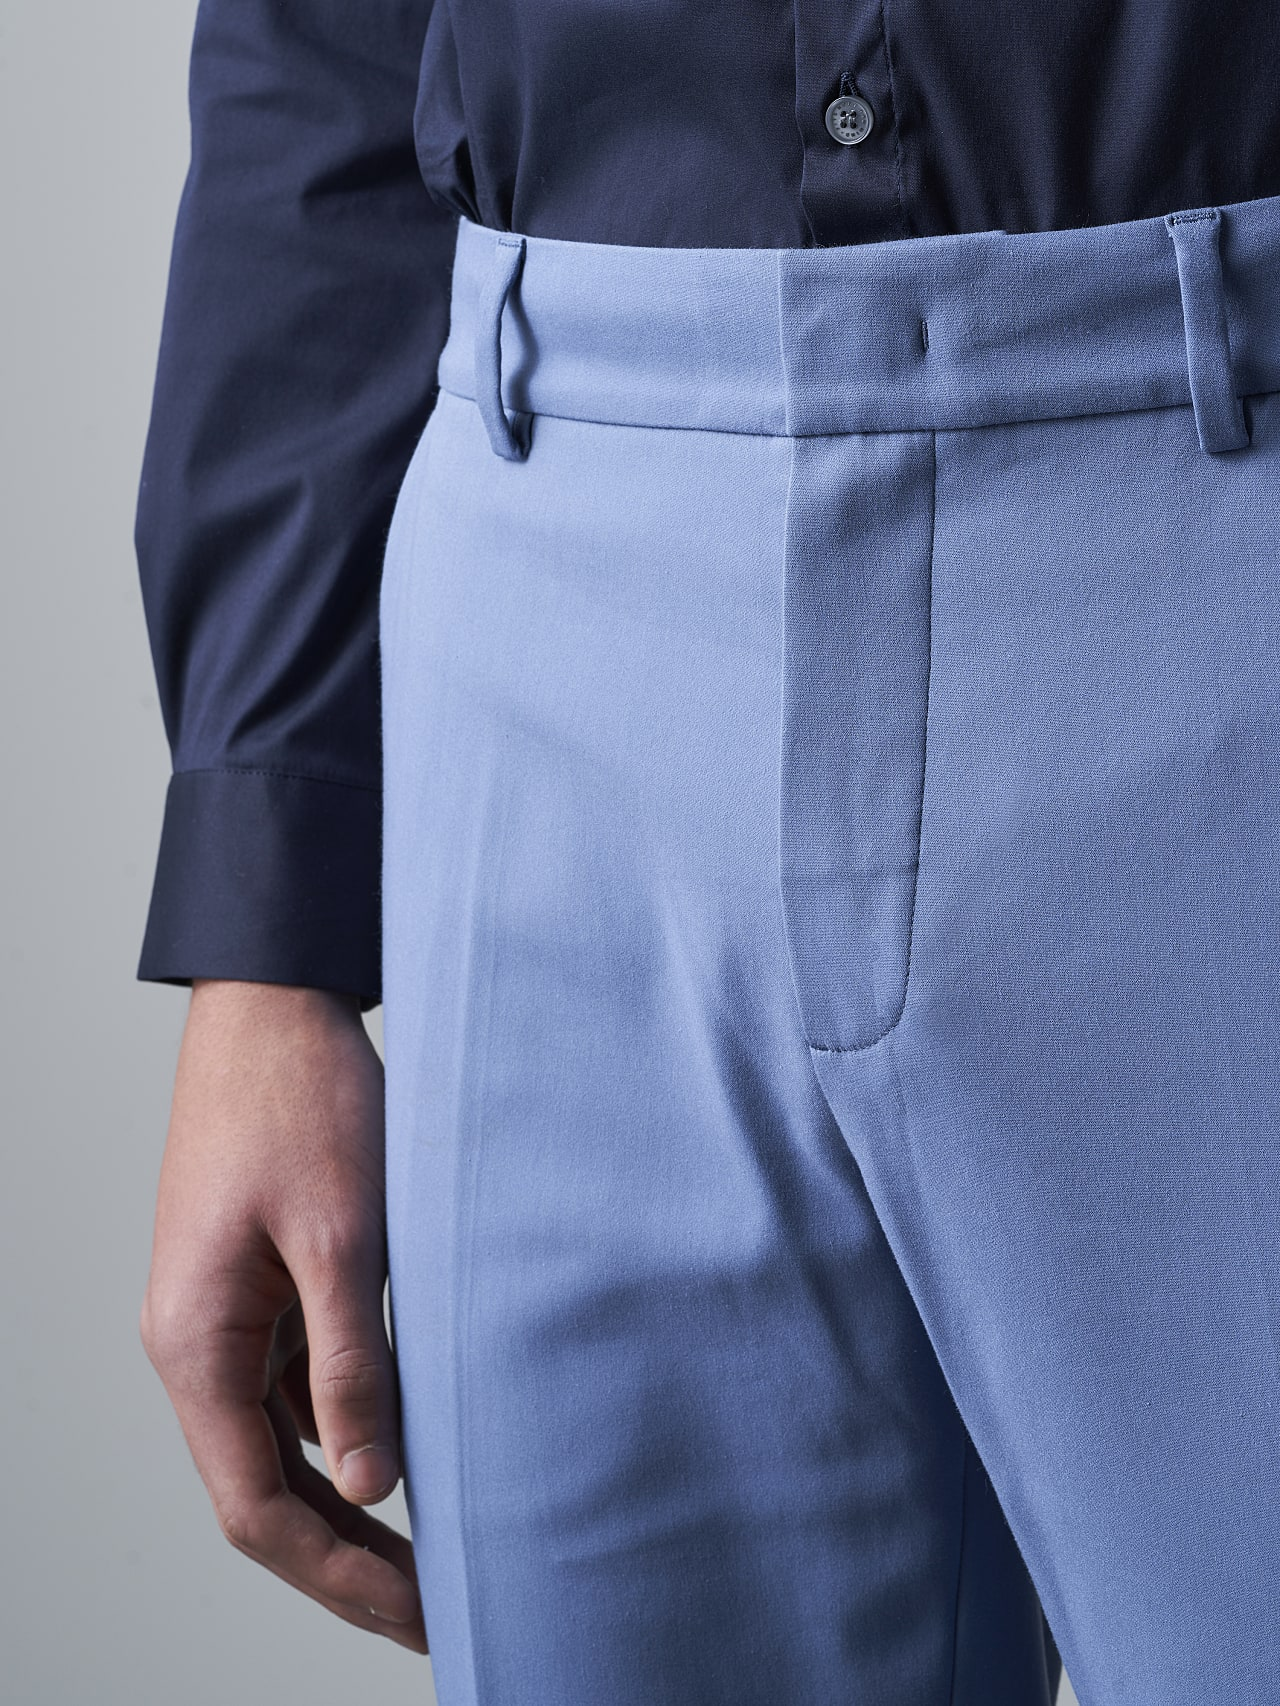 PELAN V1.Y5.02 Tapered Pants with Pleats light blue Right Alpha Tauri